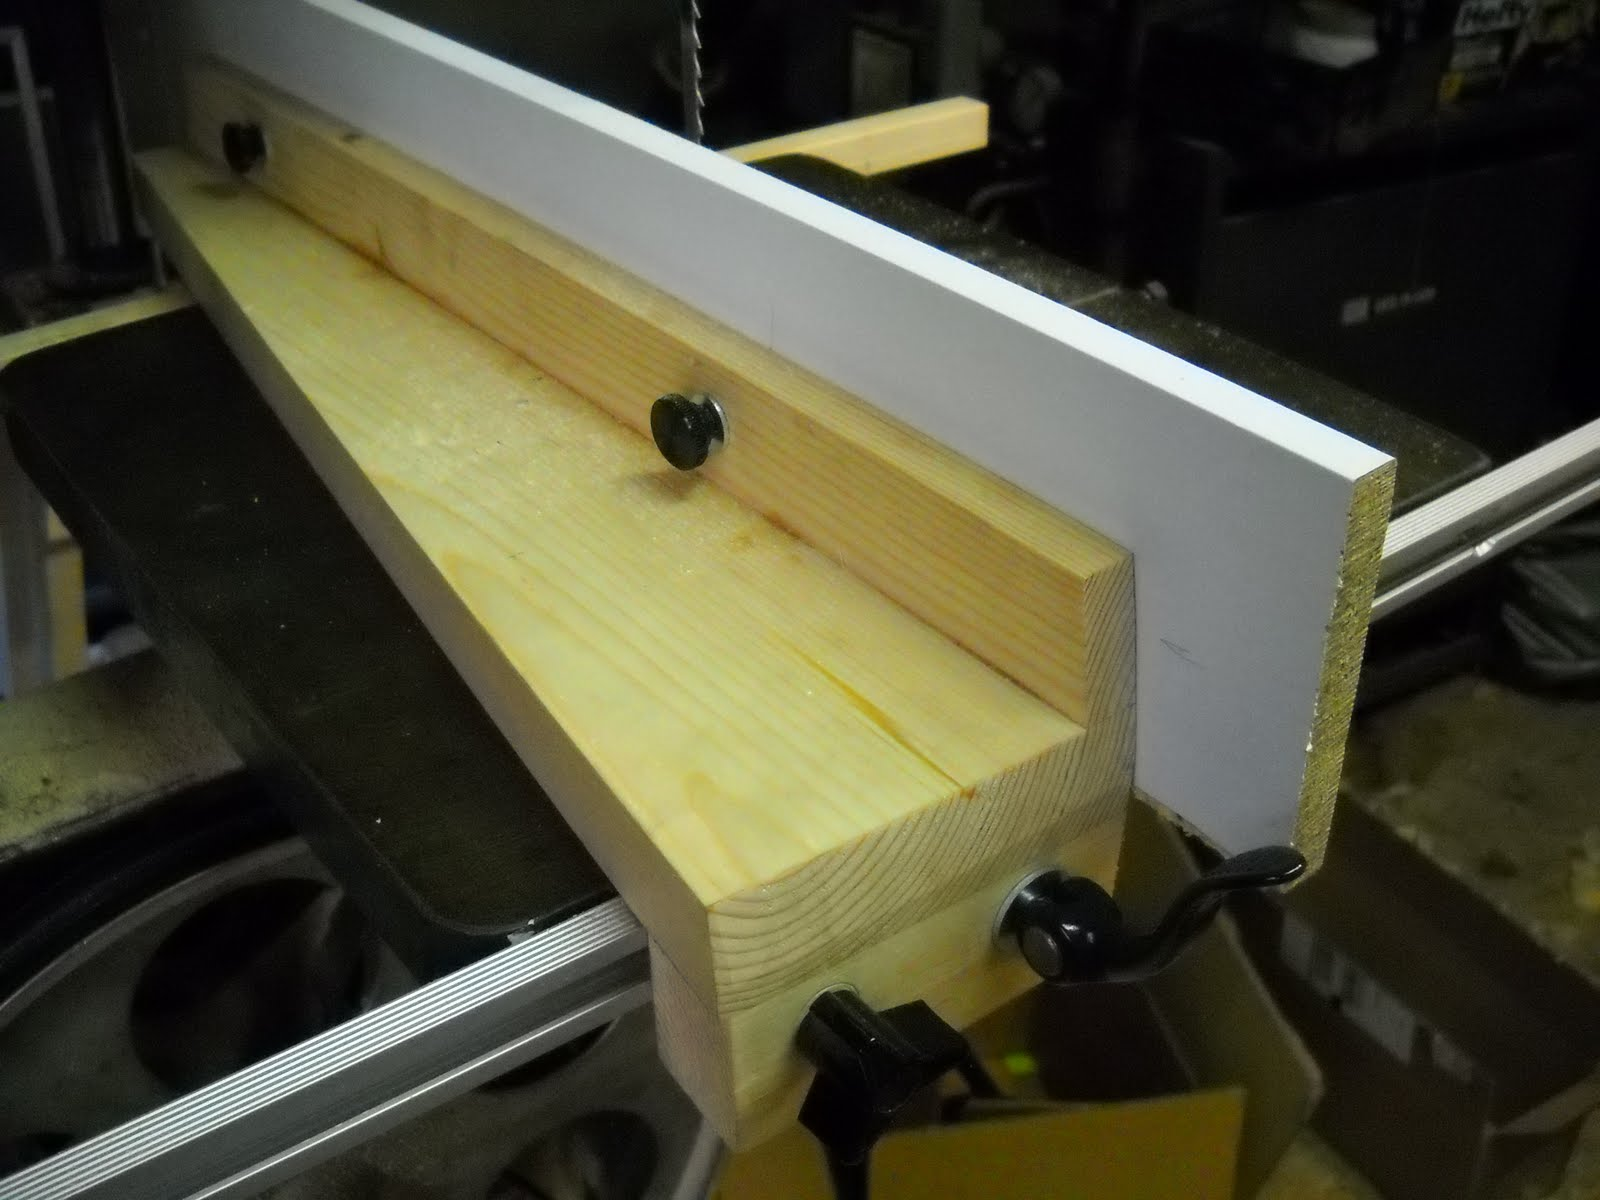 The Woodshop Bug Homemade Bandsaw Fence Band Saw Wiring Diagrams